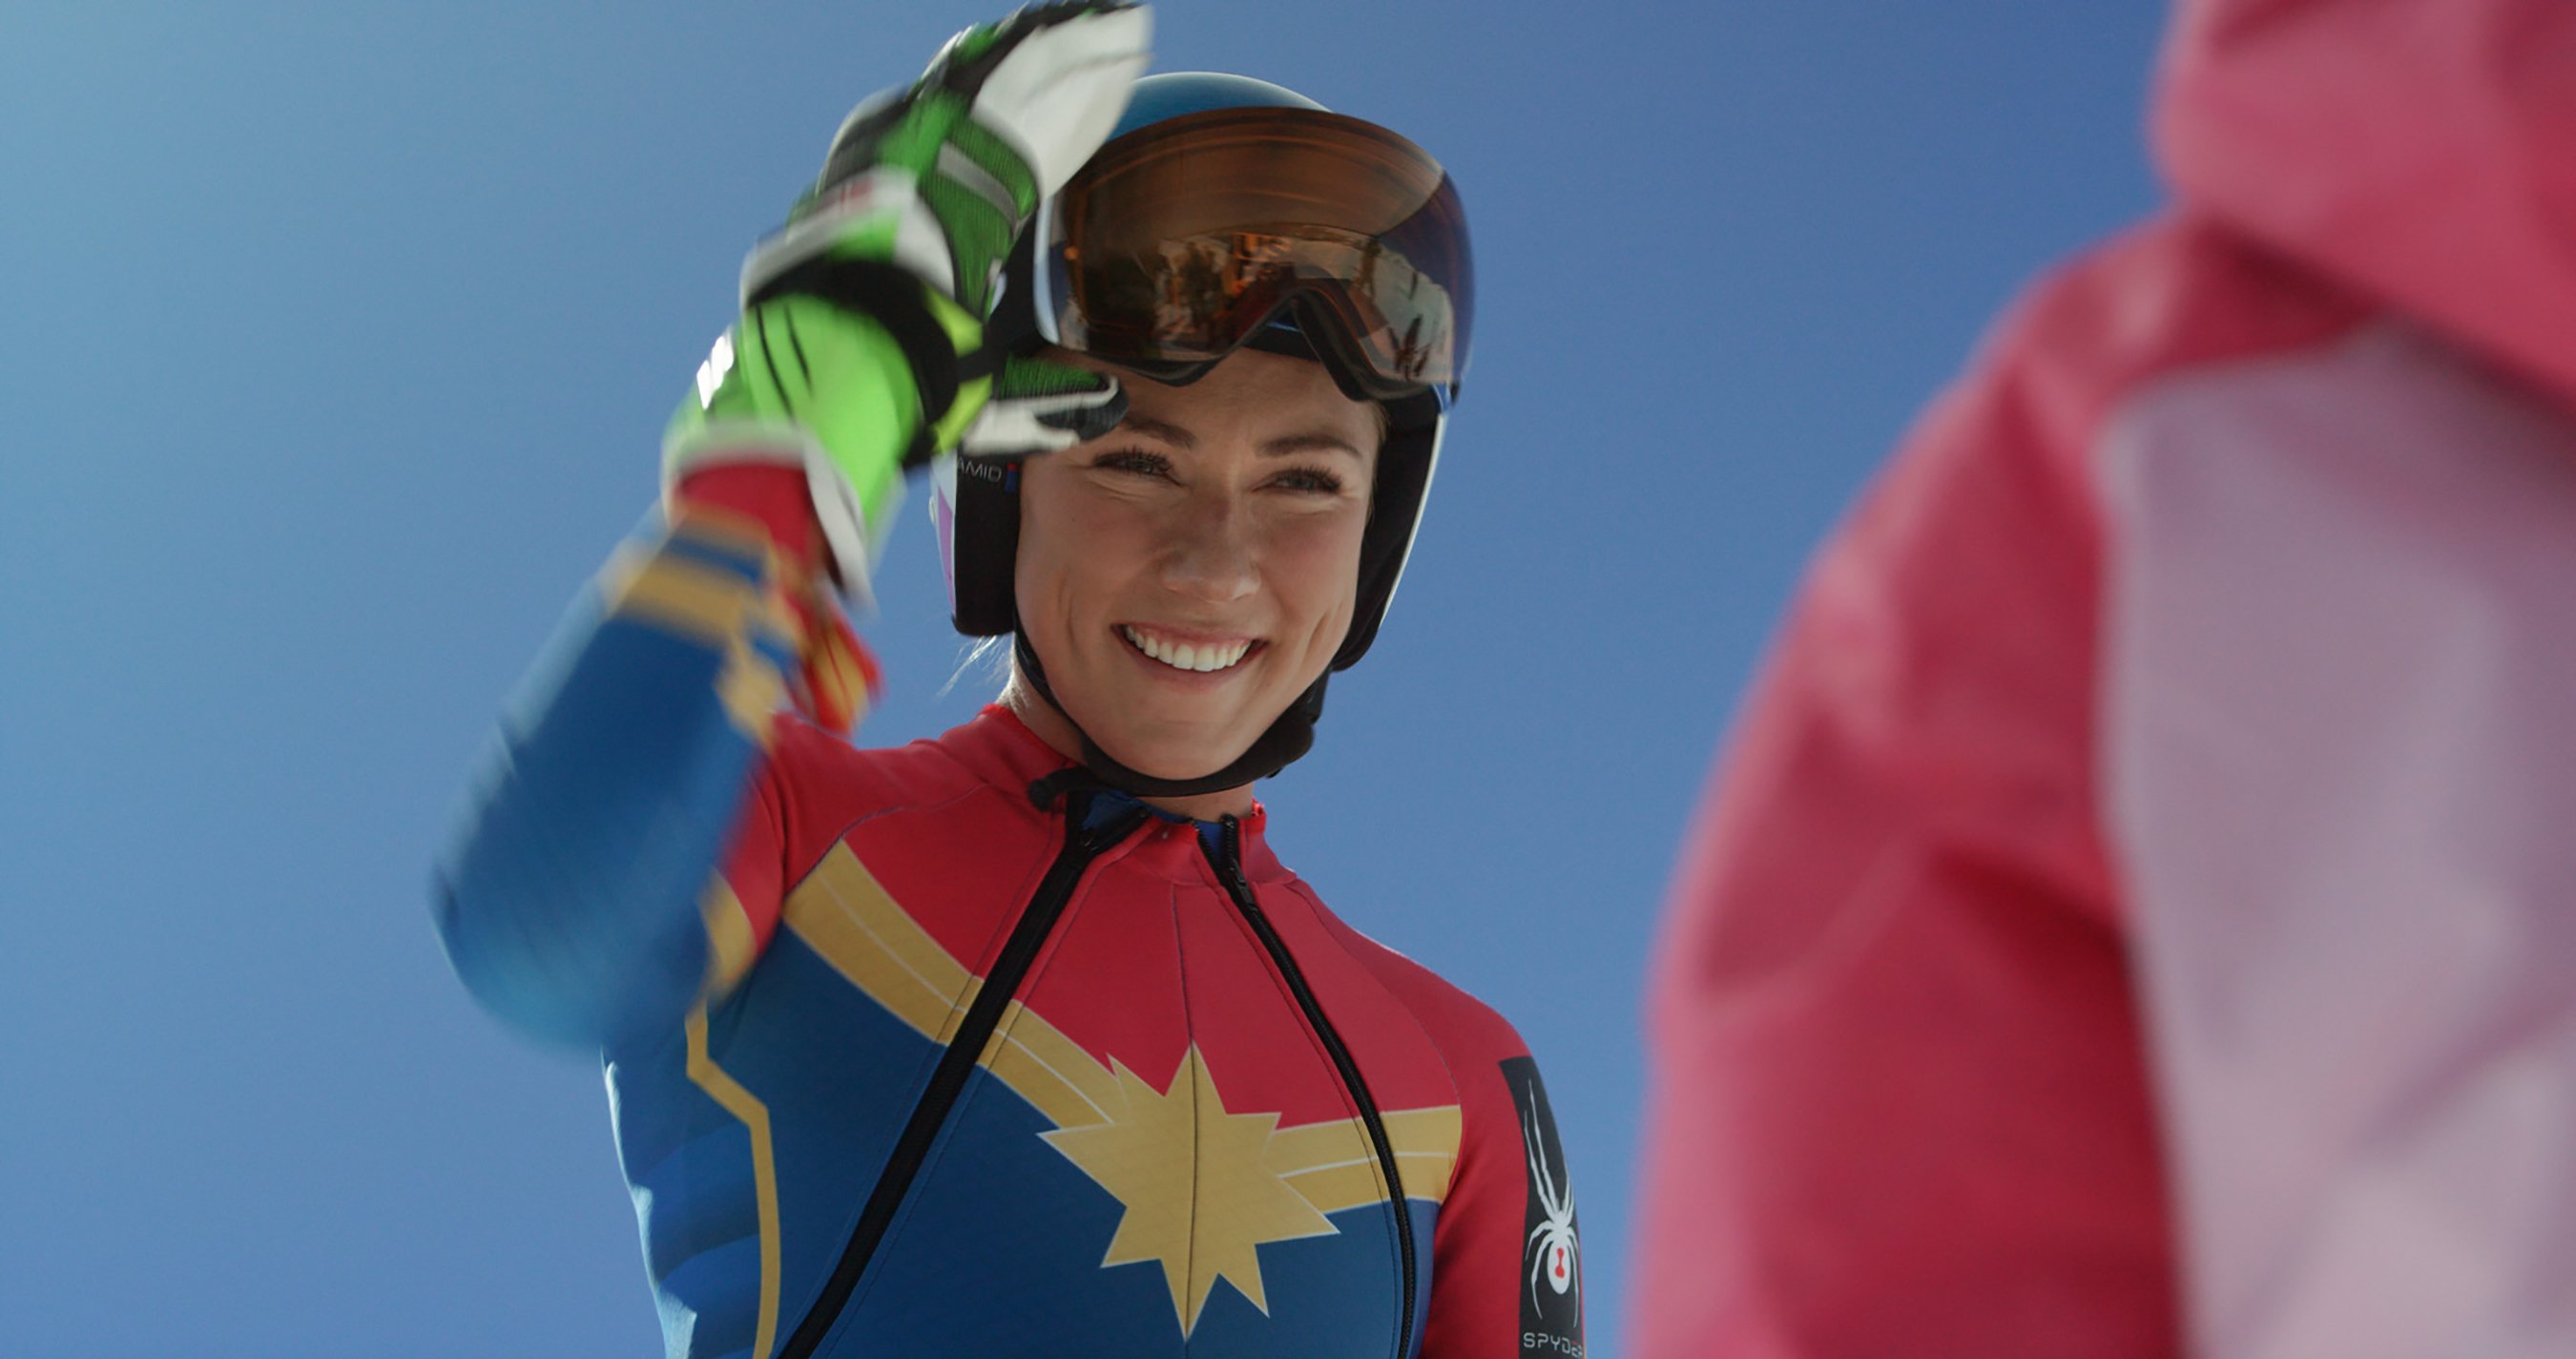 Super Bowl commercial: Olympian Mikaela Shiffrin in NBC ad